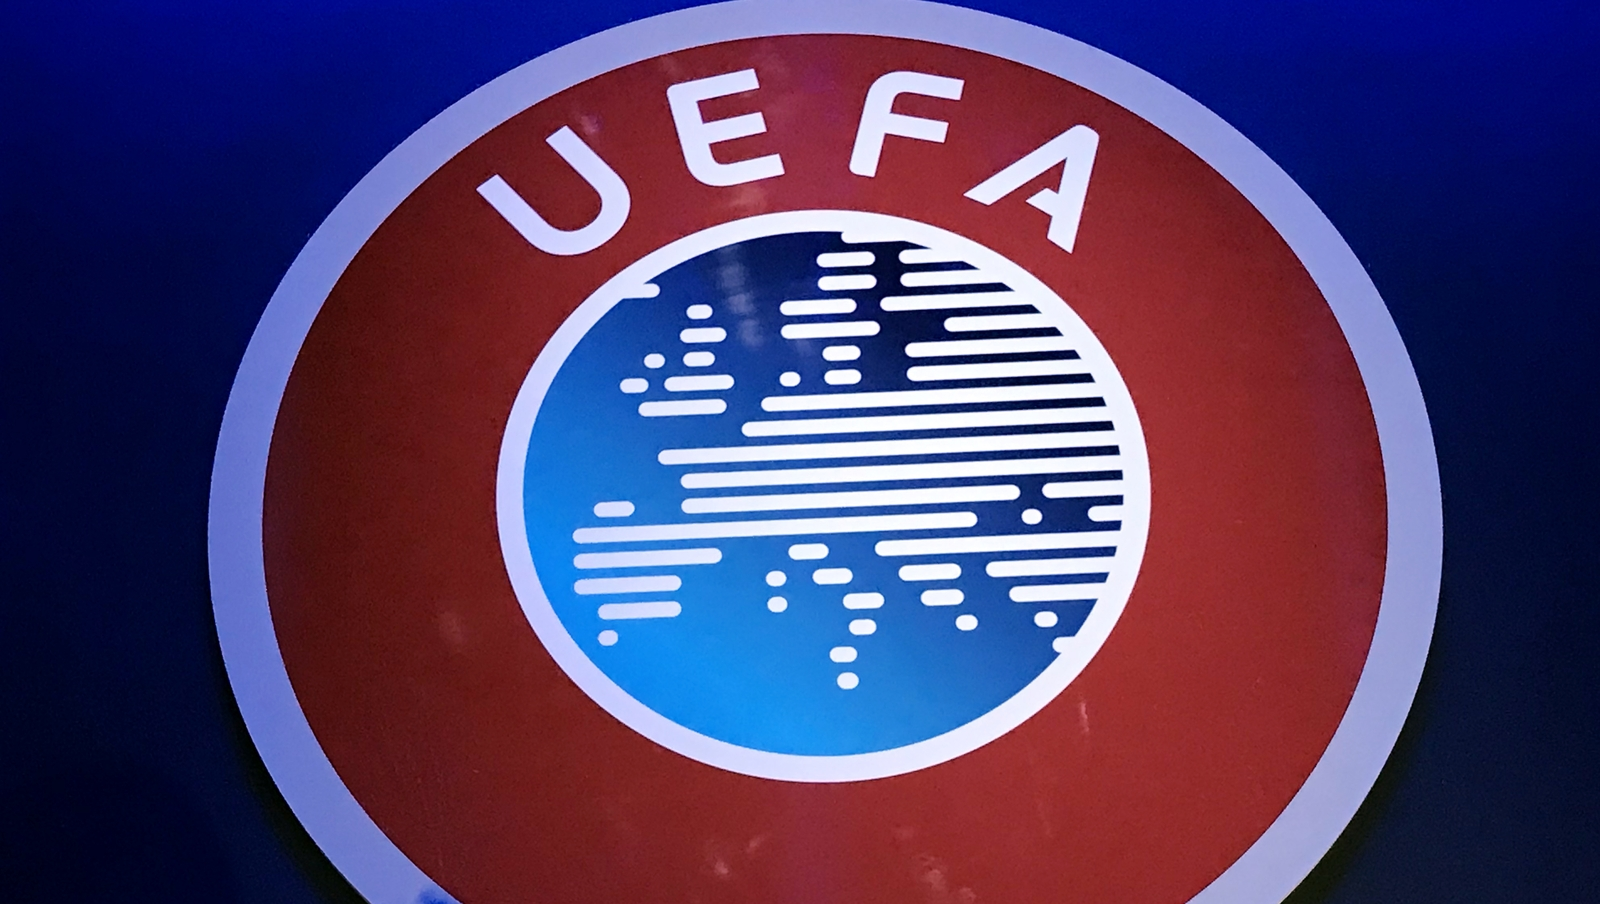 UEFA secures court converse to block illegal streaming